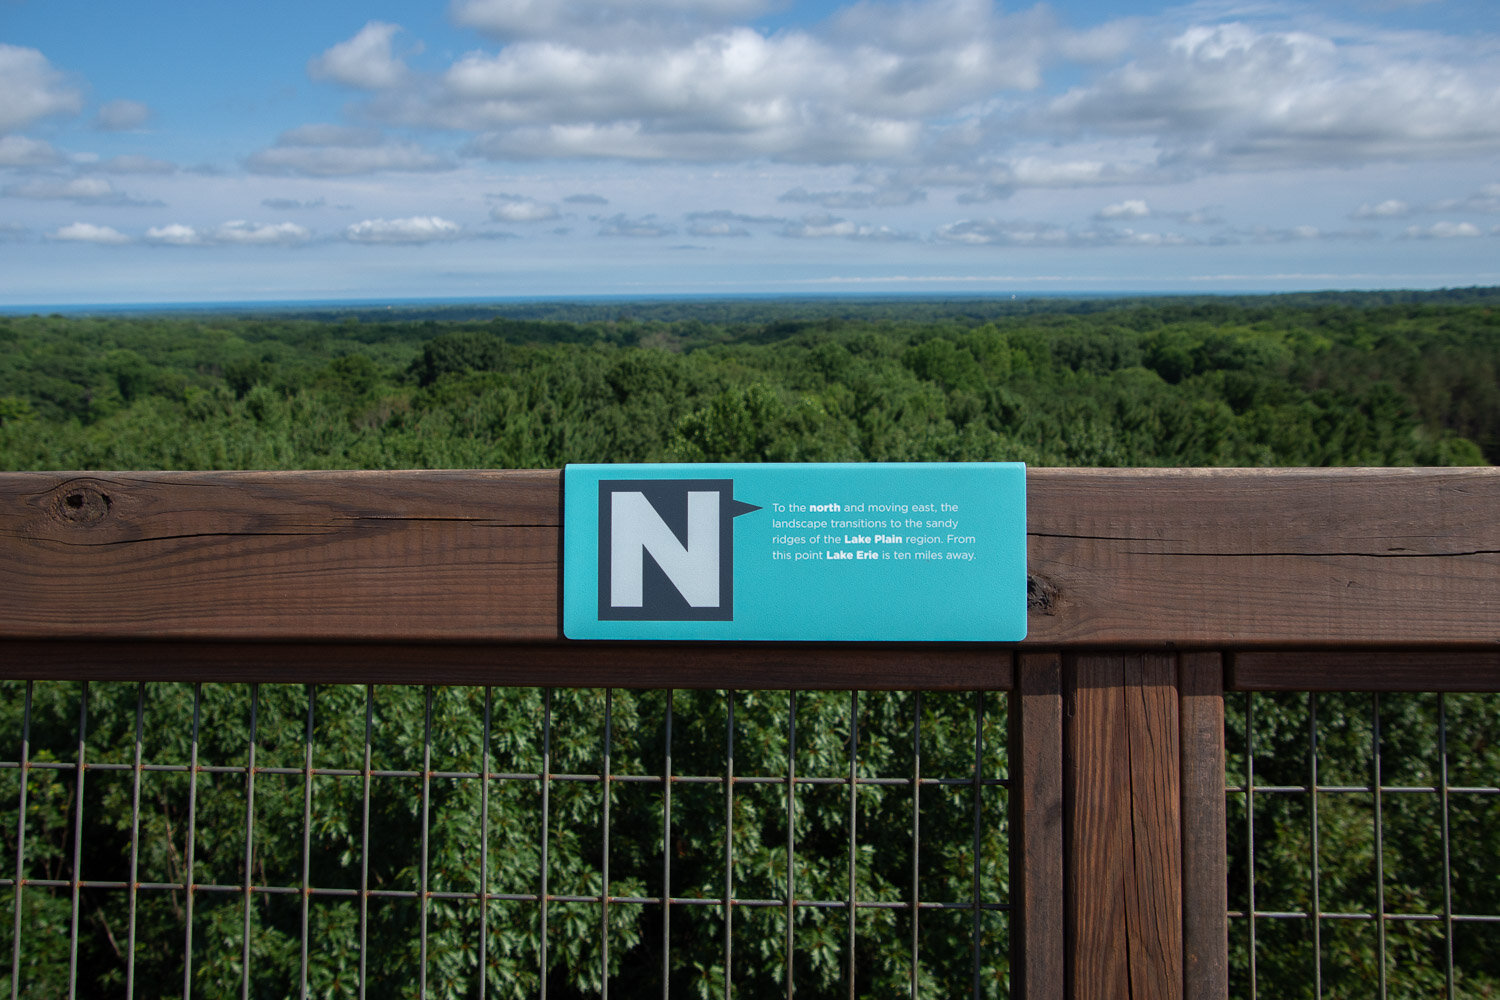 View from Emergent tower in Holden Arboretum, Ohio.